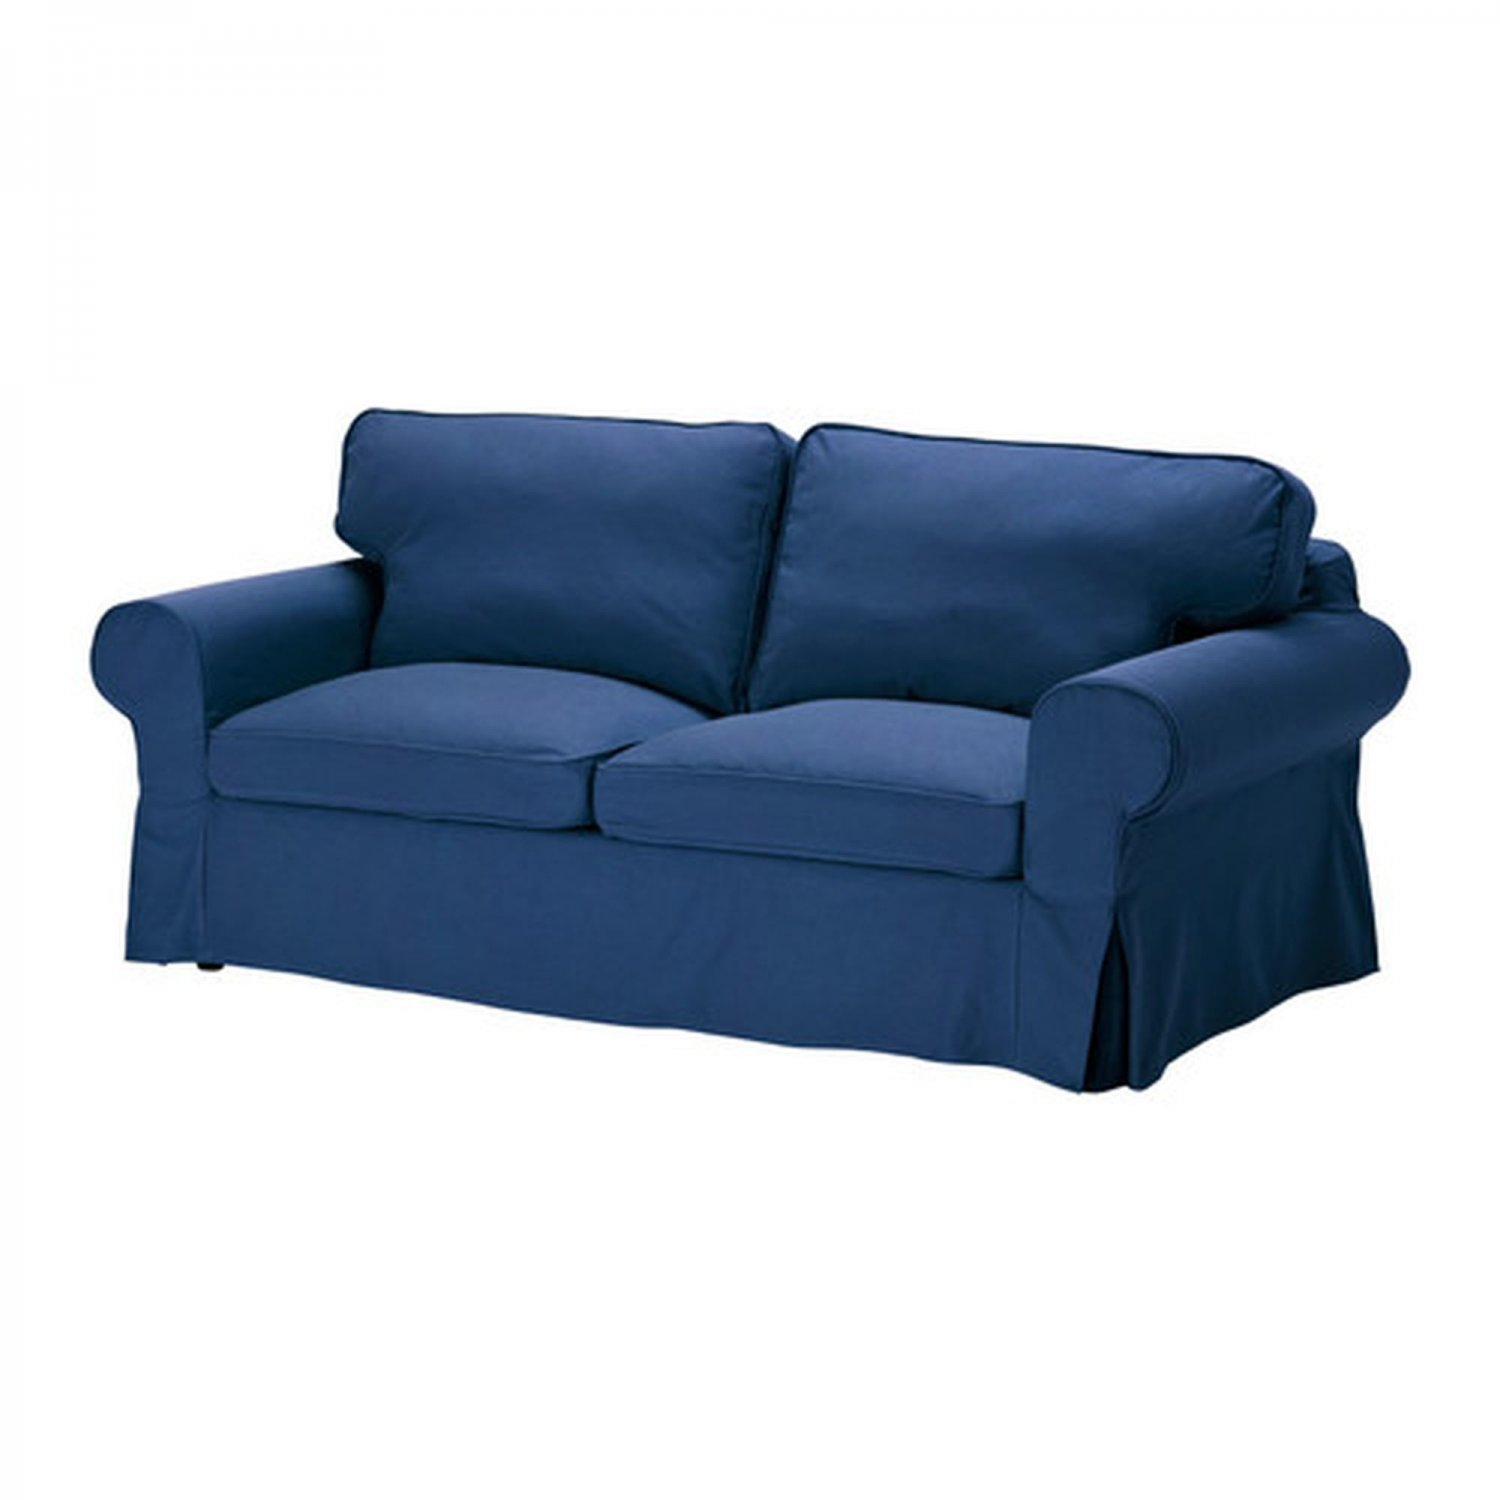 chair slipcovers australia inflatable bed bath and beyond ikea ektorp 2 seat sofa cover loveseat slipcover idemo blue